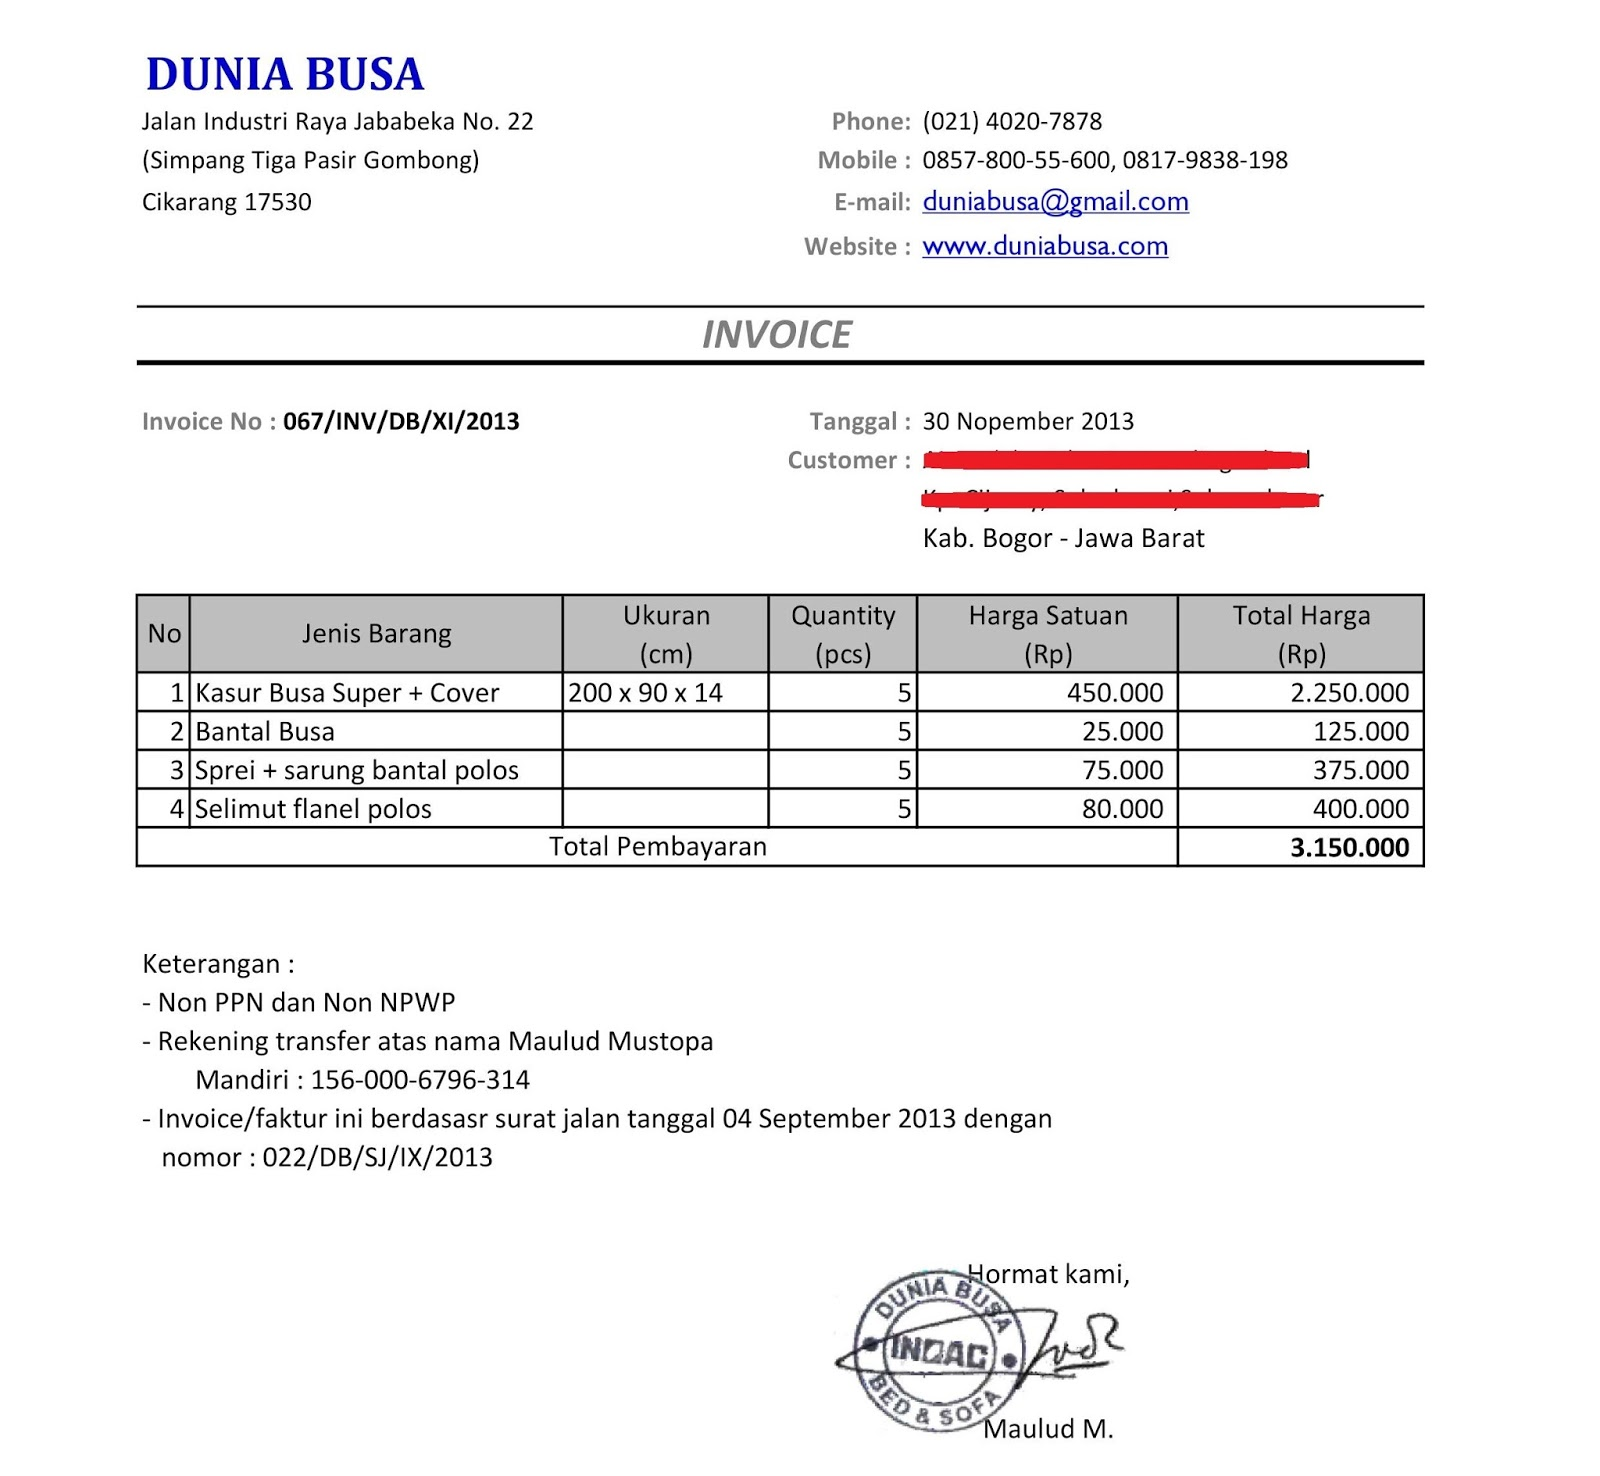 Centralasianshepherdus  Seductive Free Invoice Online  Create Invoice Online  Invoice Template  With Exquisite Contoh Format Invoice Atau Surat Tagihan  Brankas Arsip  Free Invoice Online With Attractive Pro Invoice Also Proforma Invoice Format In Addition Find Out Invoice Price Of Car And Used Car Invoice Price As Well As Invoice Sample Excel Additionally Carbon Copy Invoice From Sklepco With Centralasianshepherdus  Exquisite Free Invoice Online  Create Invoice Online  Invoice Template  With Attractive Contoh Format Invoice Atau Surat Tagihan  Brankas Arsip  Free Invoice Online And Seductive Pro Invoice Also Proforma Invoice Format In Addition Find Out Invoice Price Of Car From Sklepco